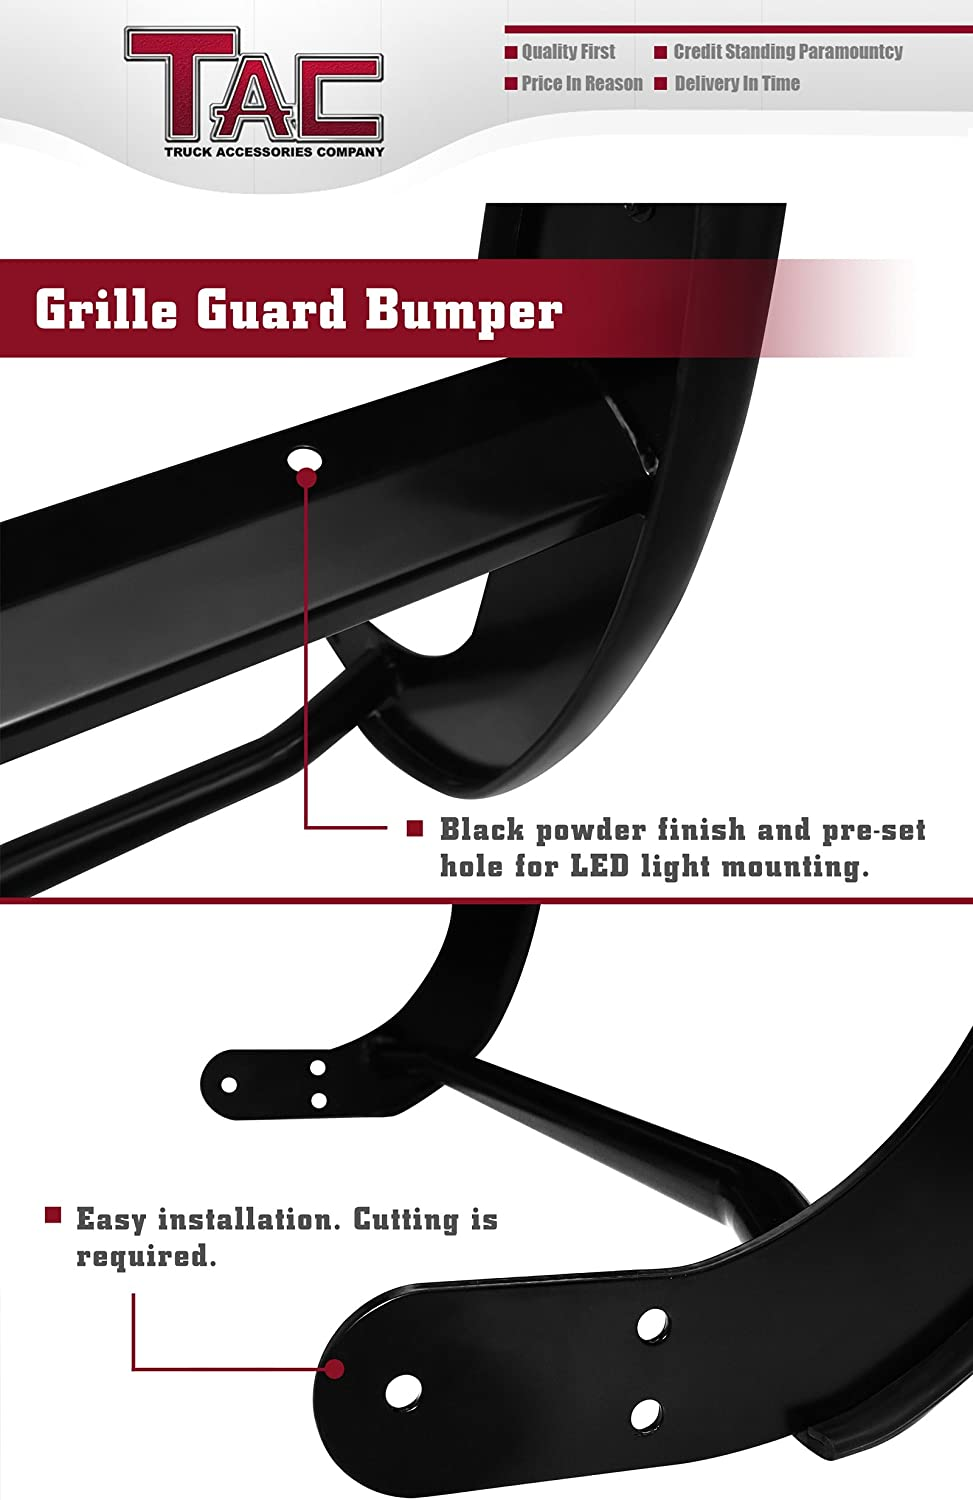 Pickup Truck Black Front Bumper Brush Nudge Push Bull Bar TAC Grill Guard Compatible with 2005-2015 Toyota Tacoma Remove Skid Plate- If Equipped